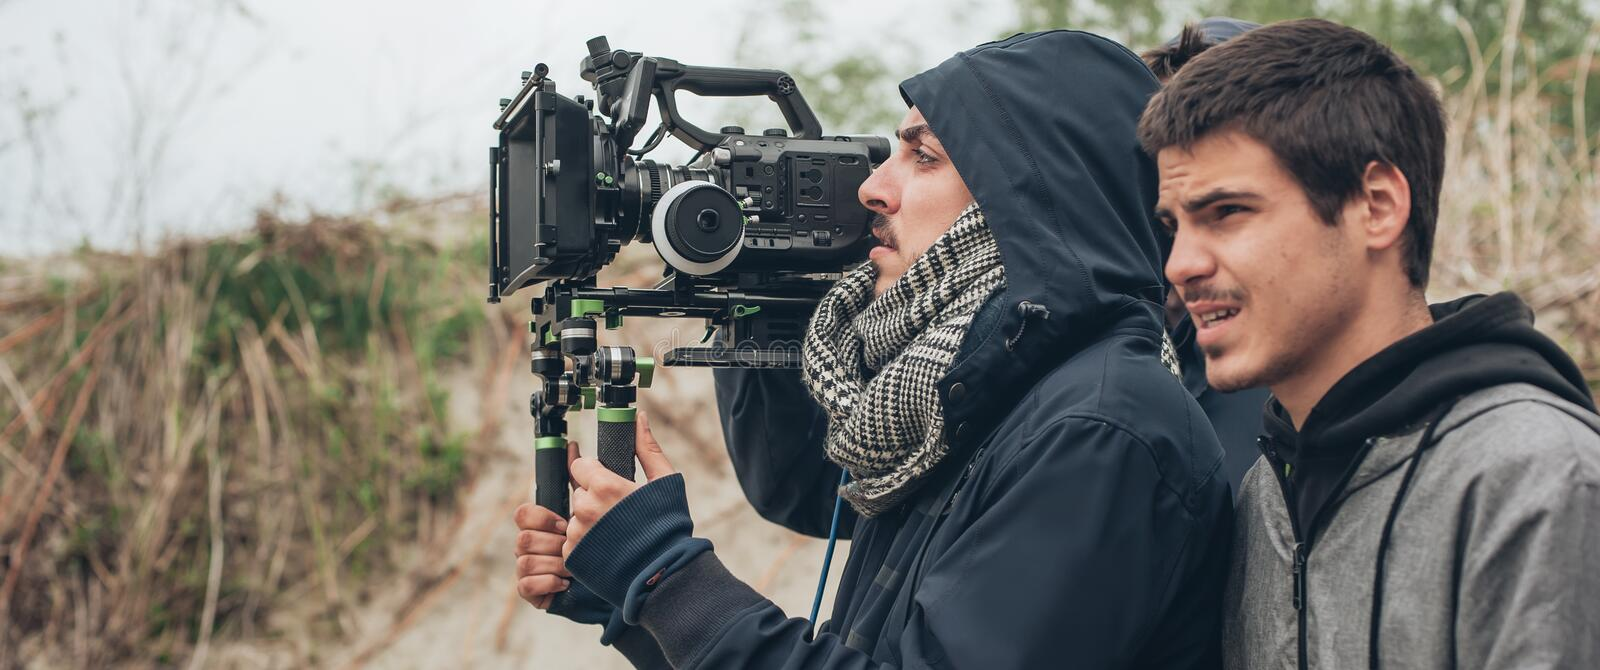 Behind the scene. Cameraman and film director shooting film scene stock photos